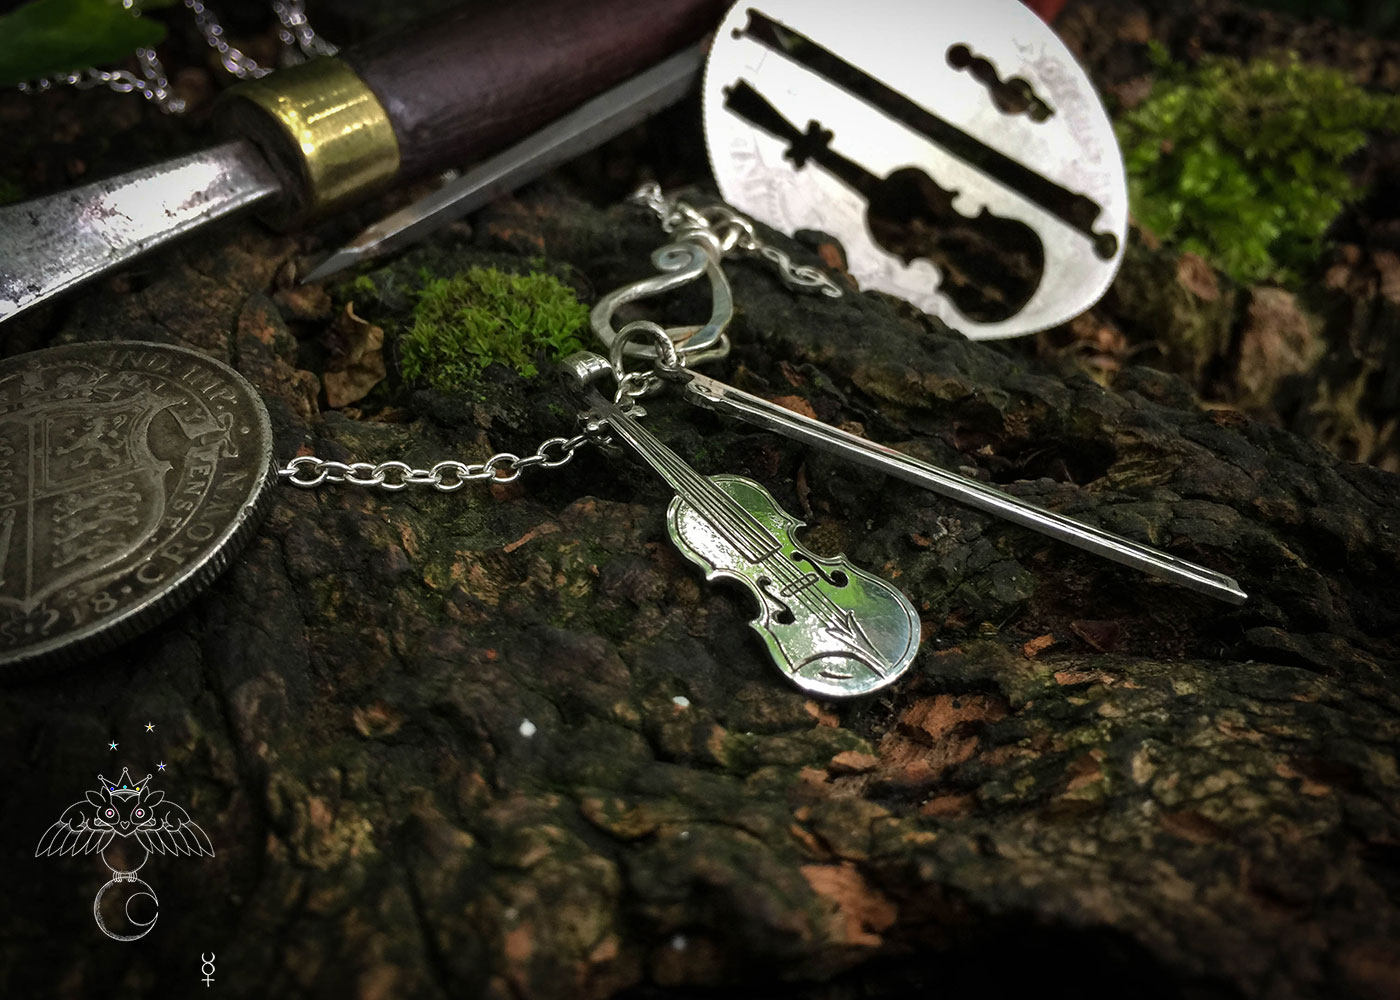 fiddle, violin necklace - handcrafted and recycled using silver coins